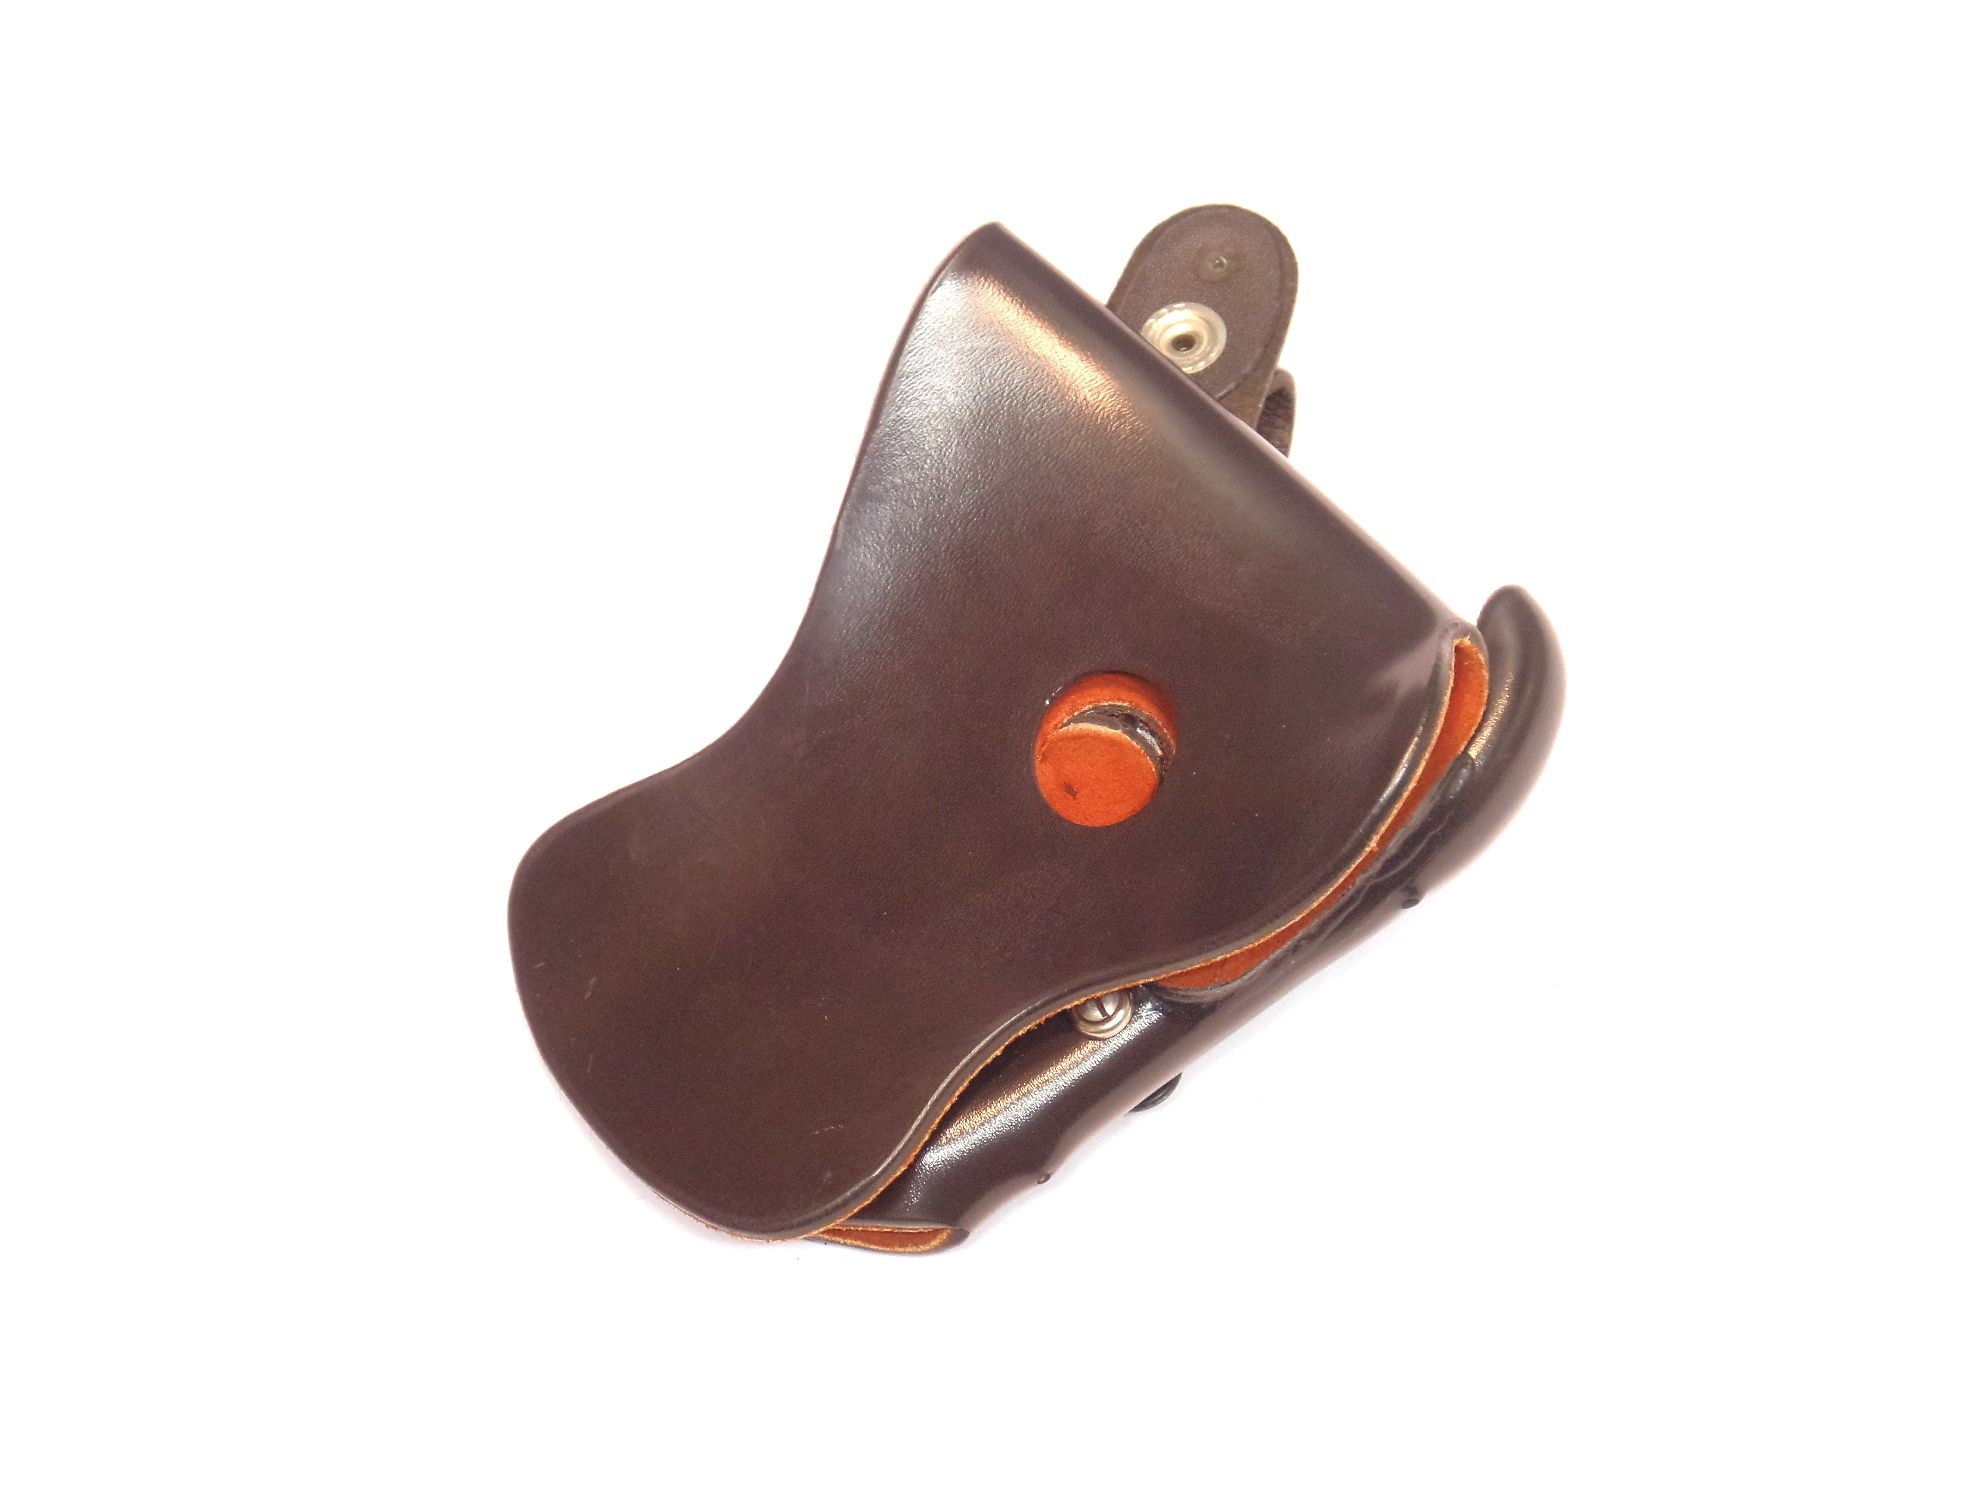 Holster RODGERS SW modèle 19